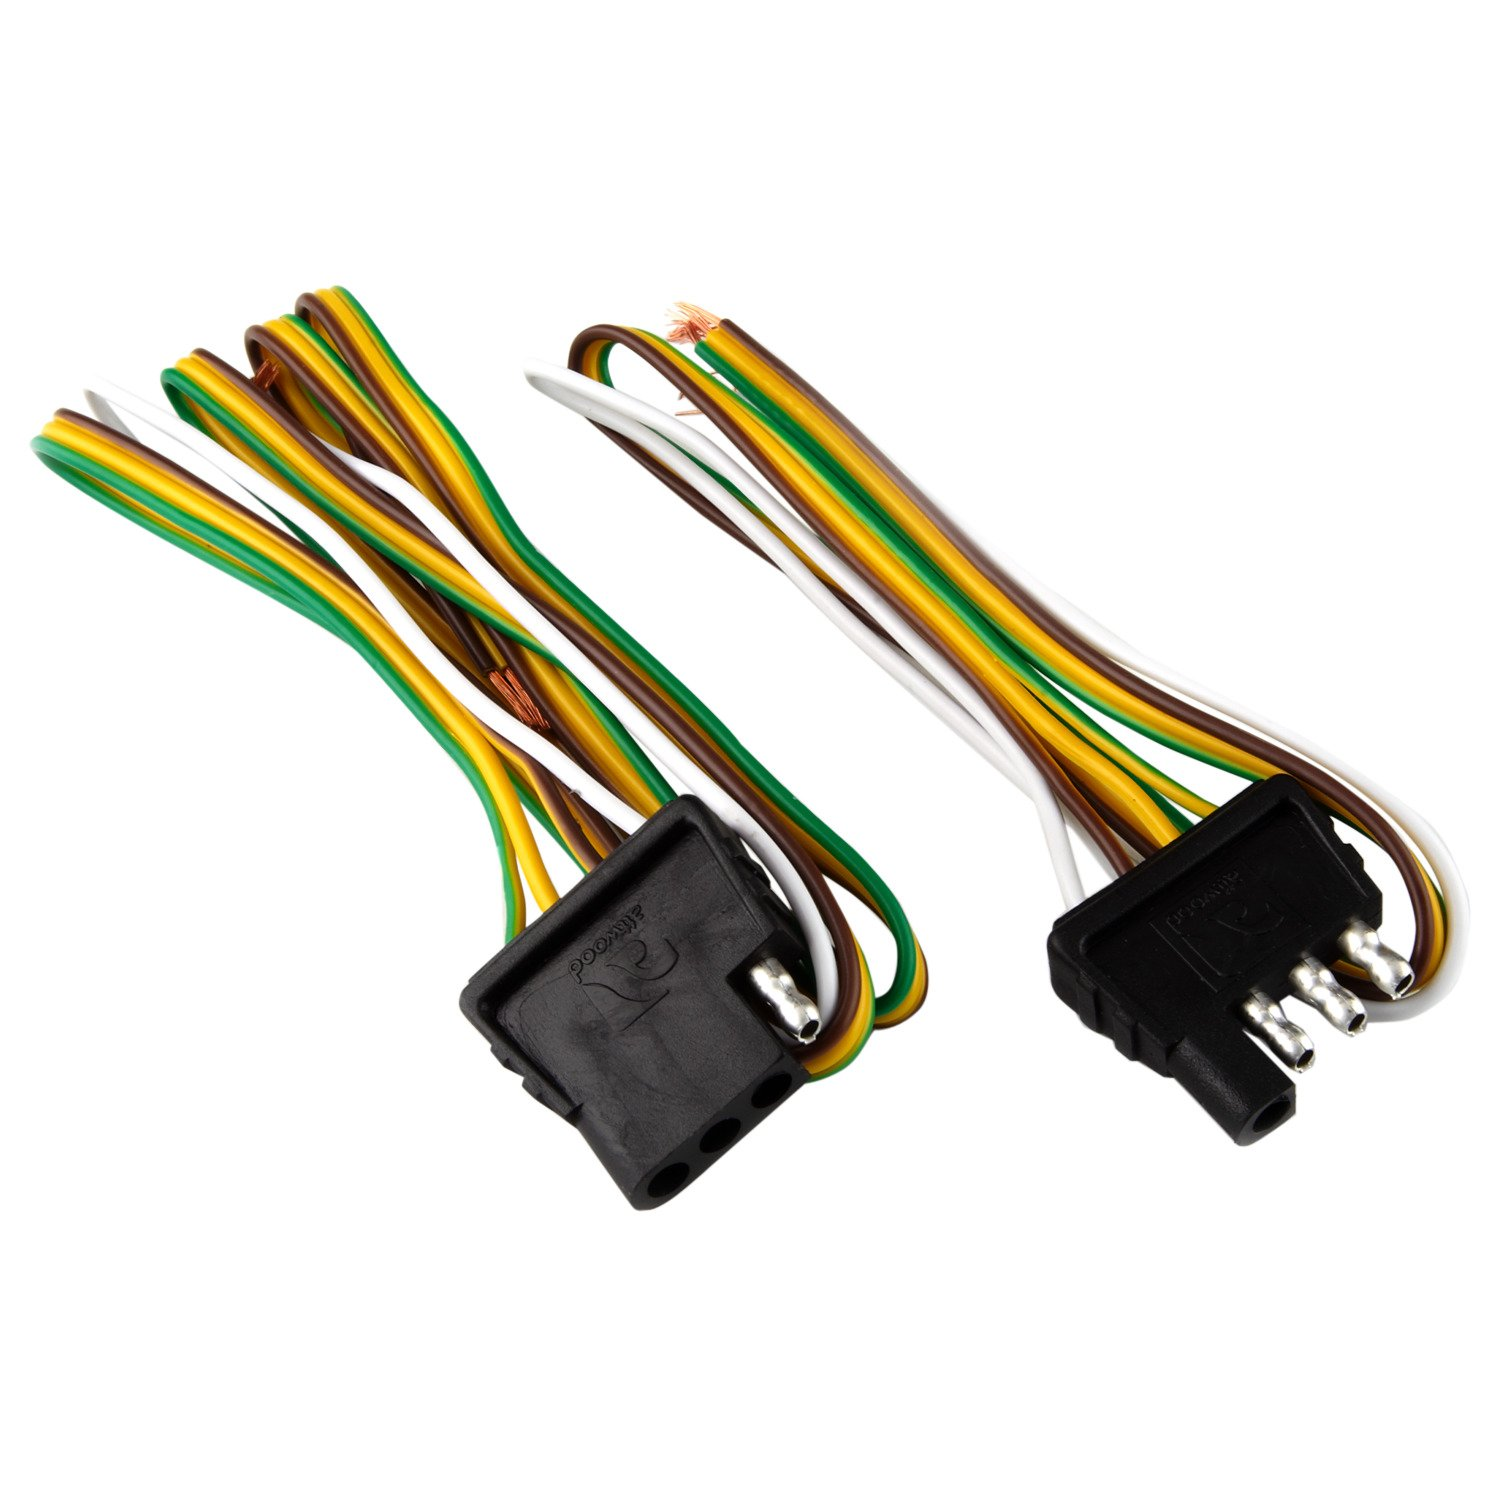 attwood 4 way flat wiring harness kit for vehicles and trailers 4 way wiring harness diagram 4 way wiring harness [ 1500 x 1500 Pixel ]